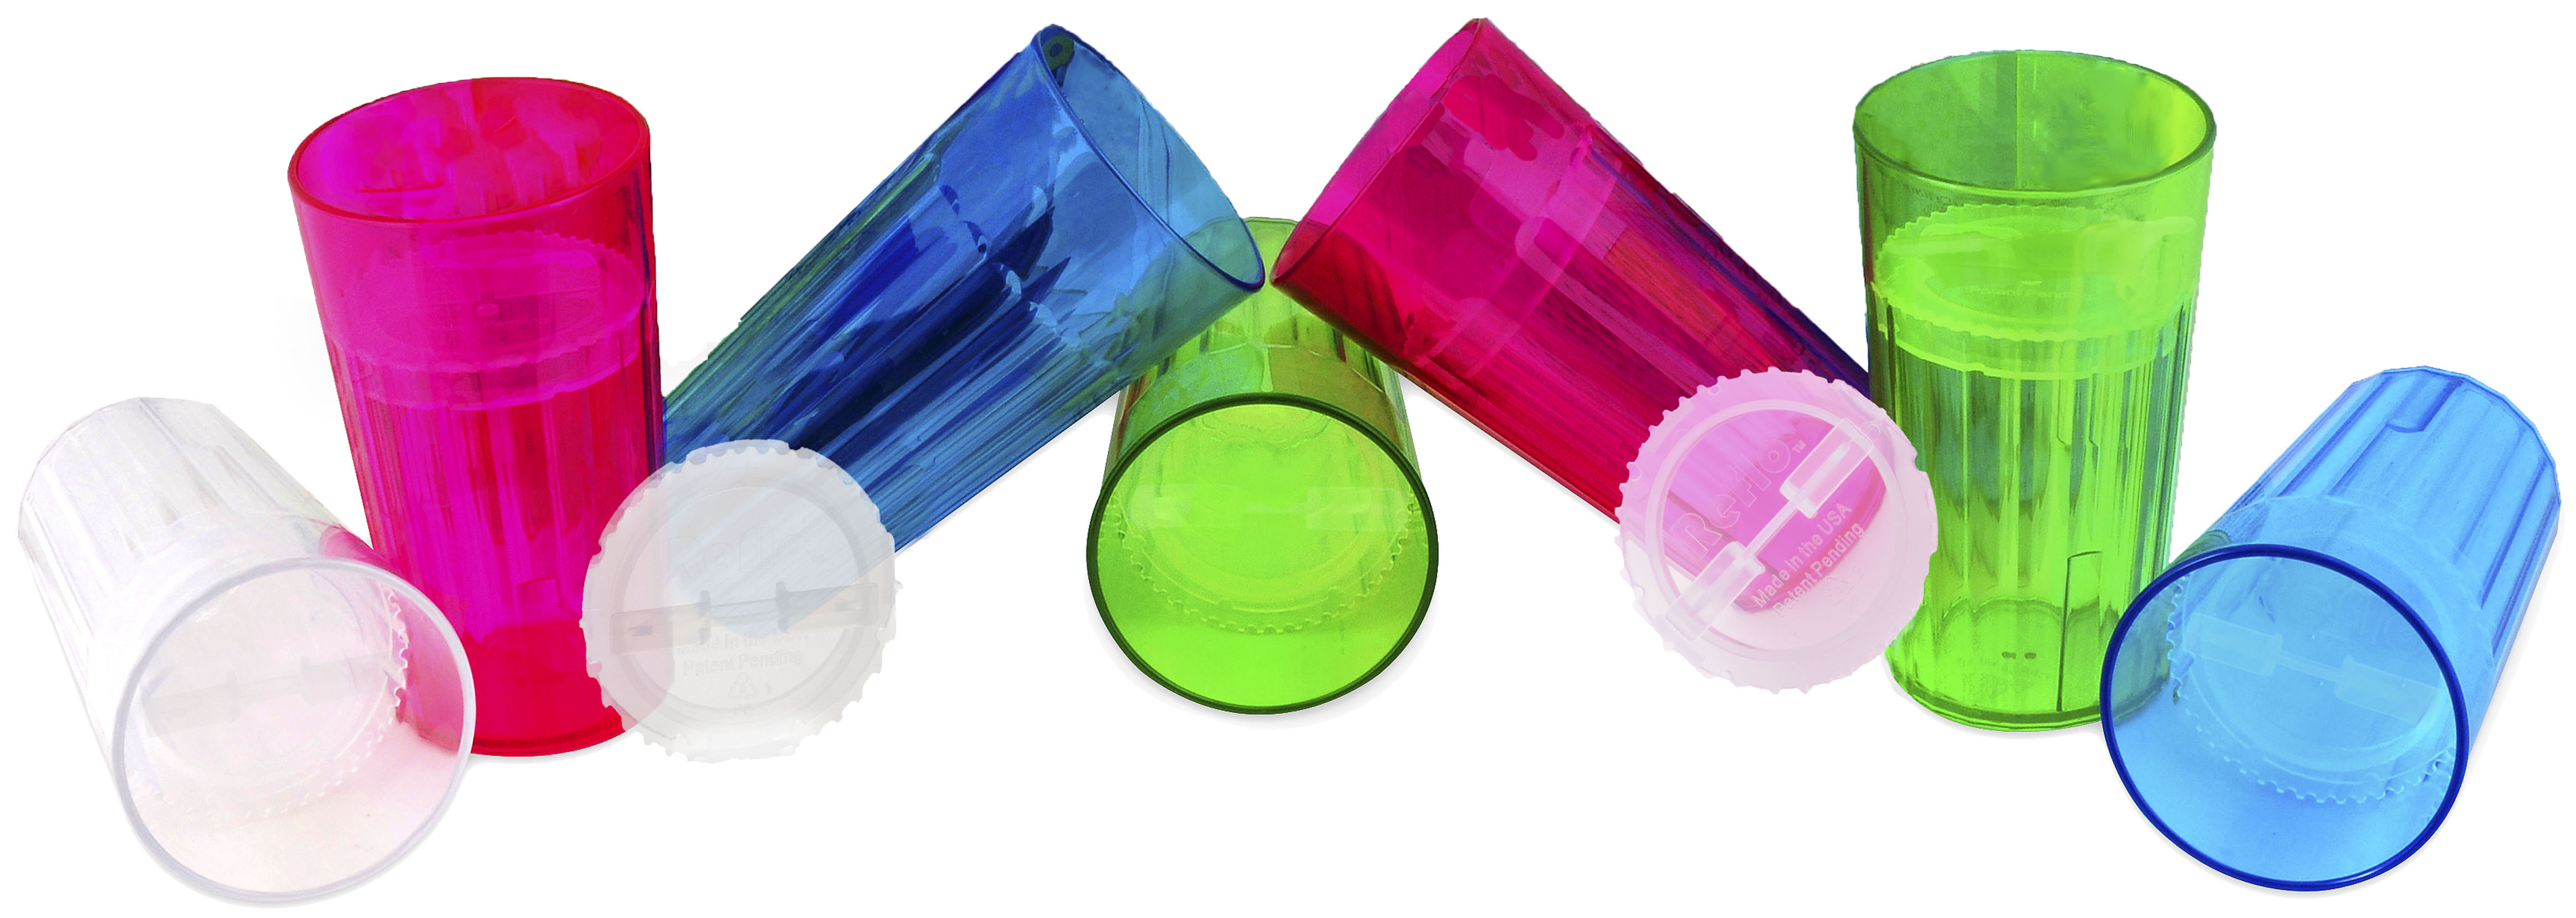 Reflo Smart Cups - A smart alternative to sippy cups